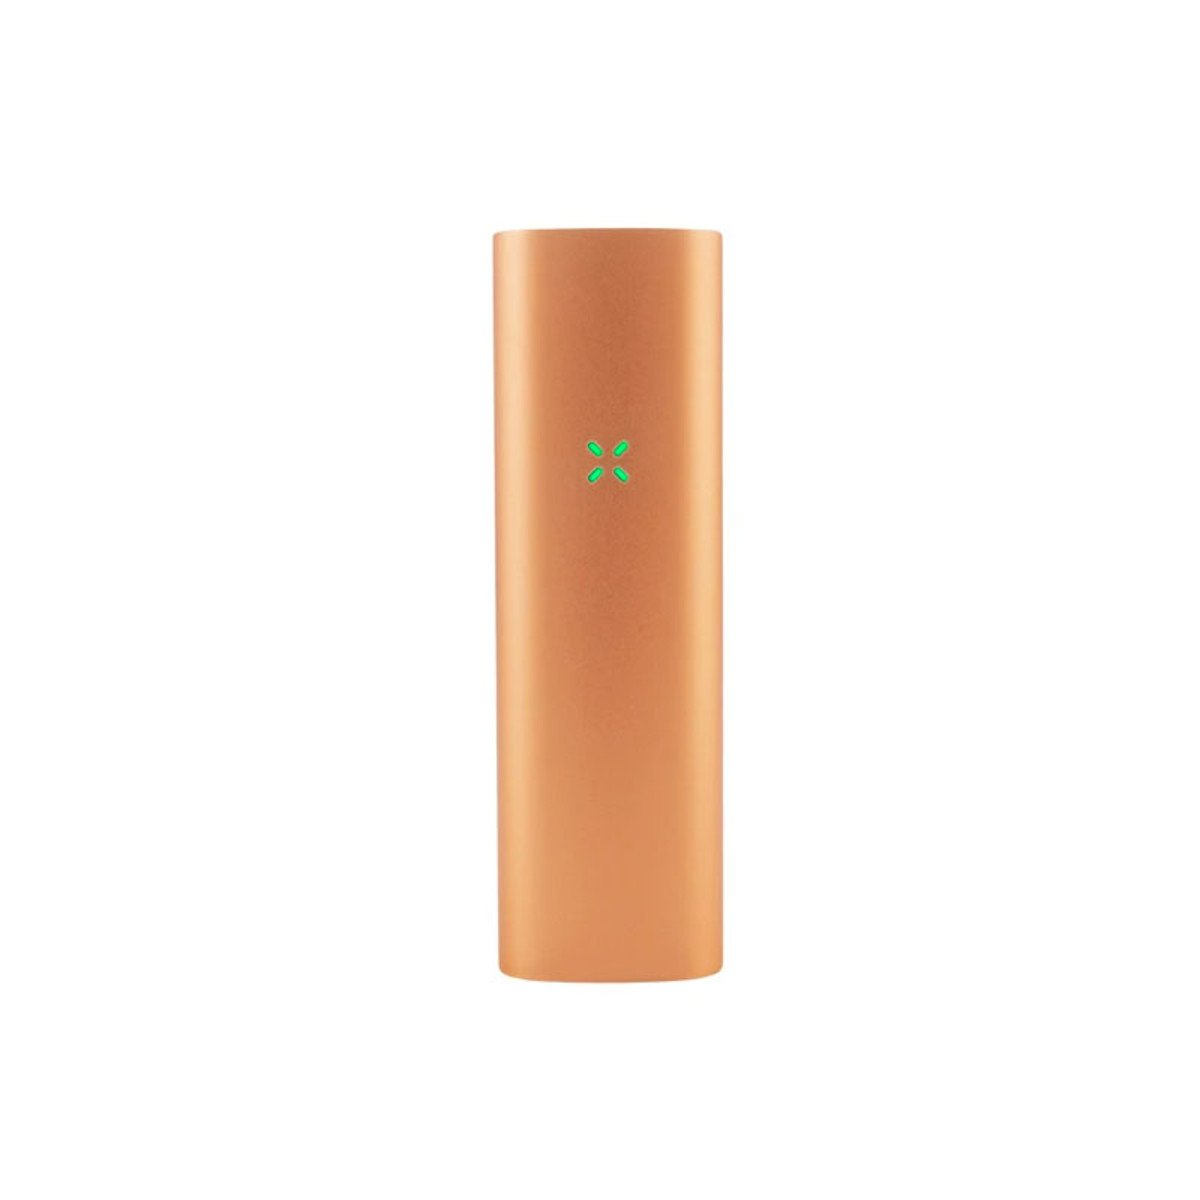 Pax 3 Dual-use Vaporizer - Complete Kit - Rose